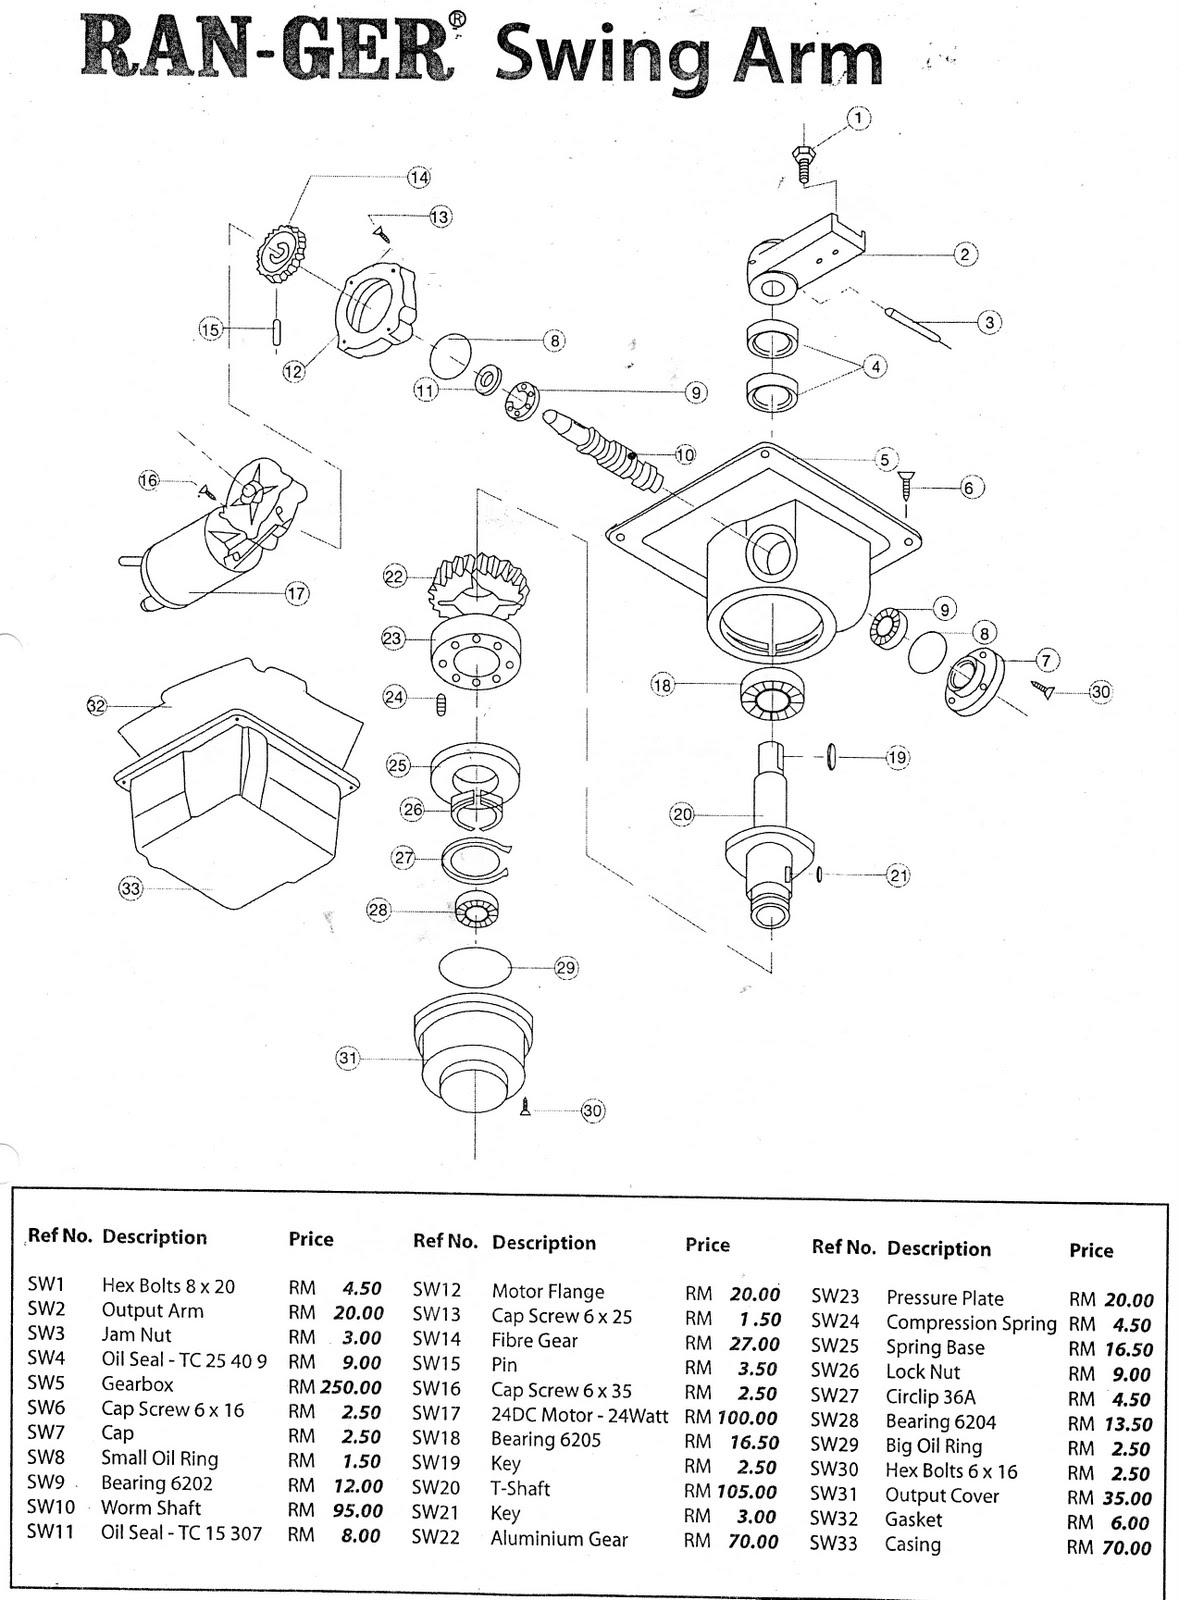 Autogate malaysia repairs spare parts readily available for underground systems parts list for gate systems ranger good 1 signal mag and west gate are readily available as per the diagram below cheapraybanclubmaster Choice Image